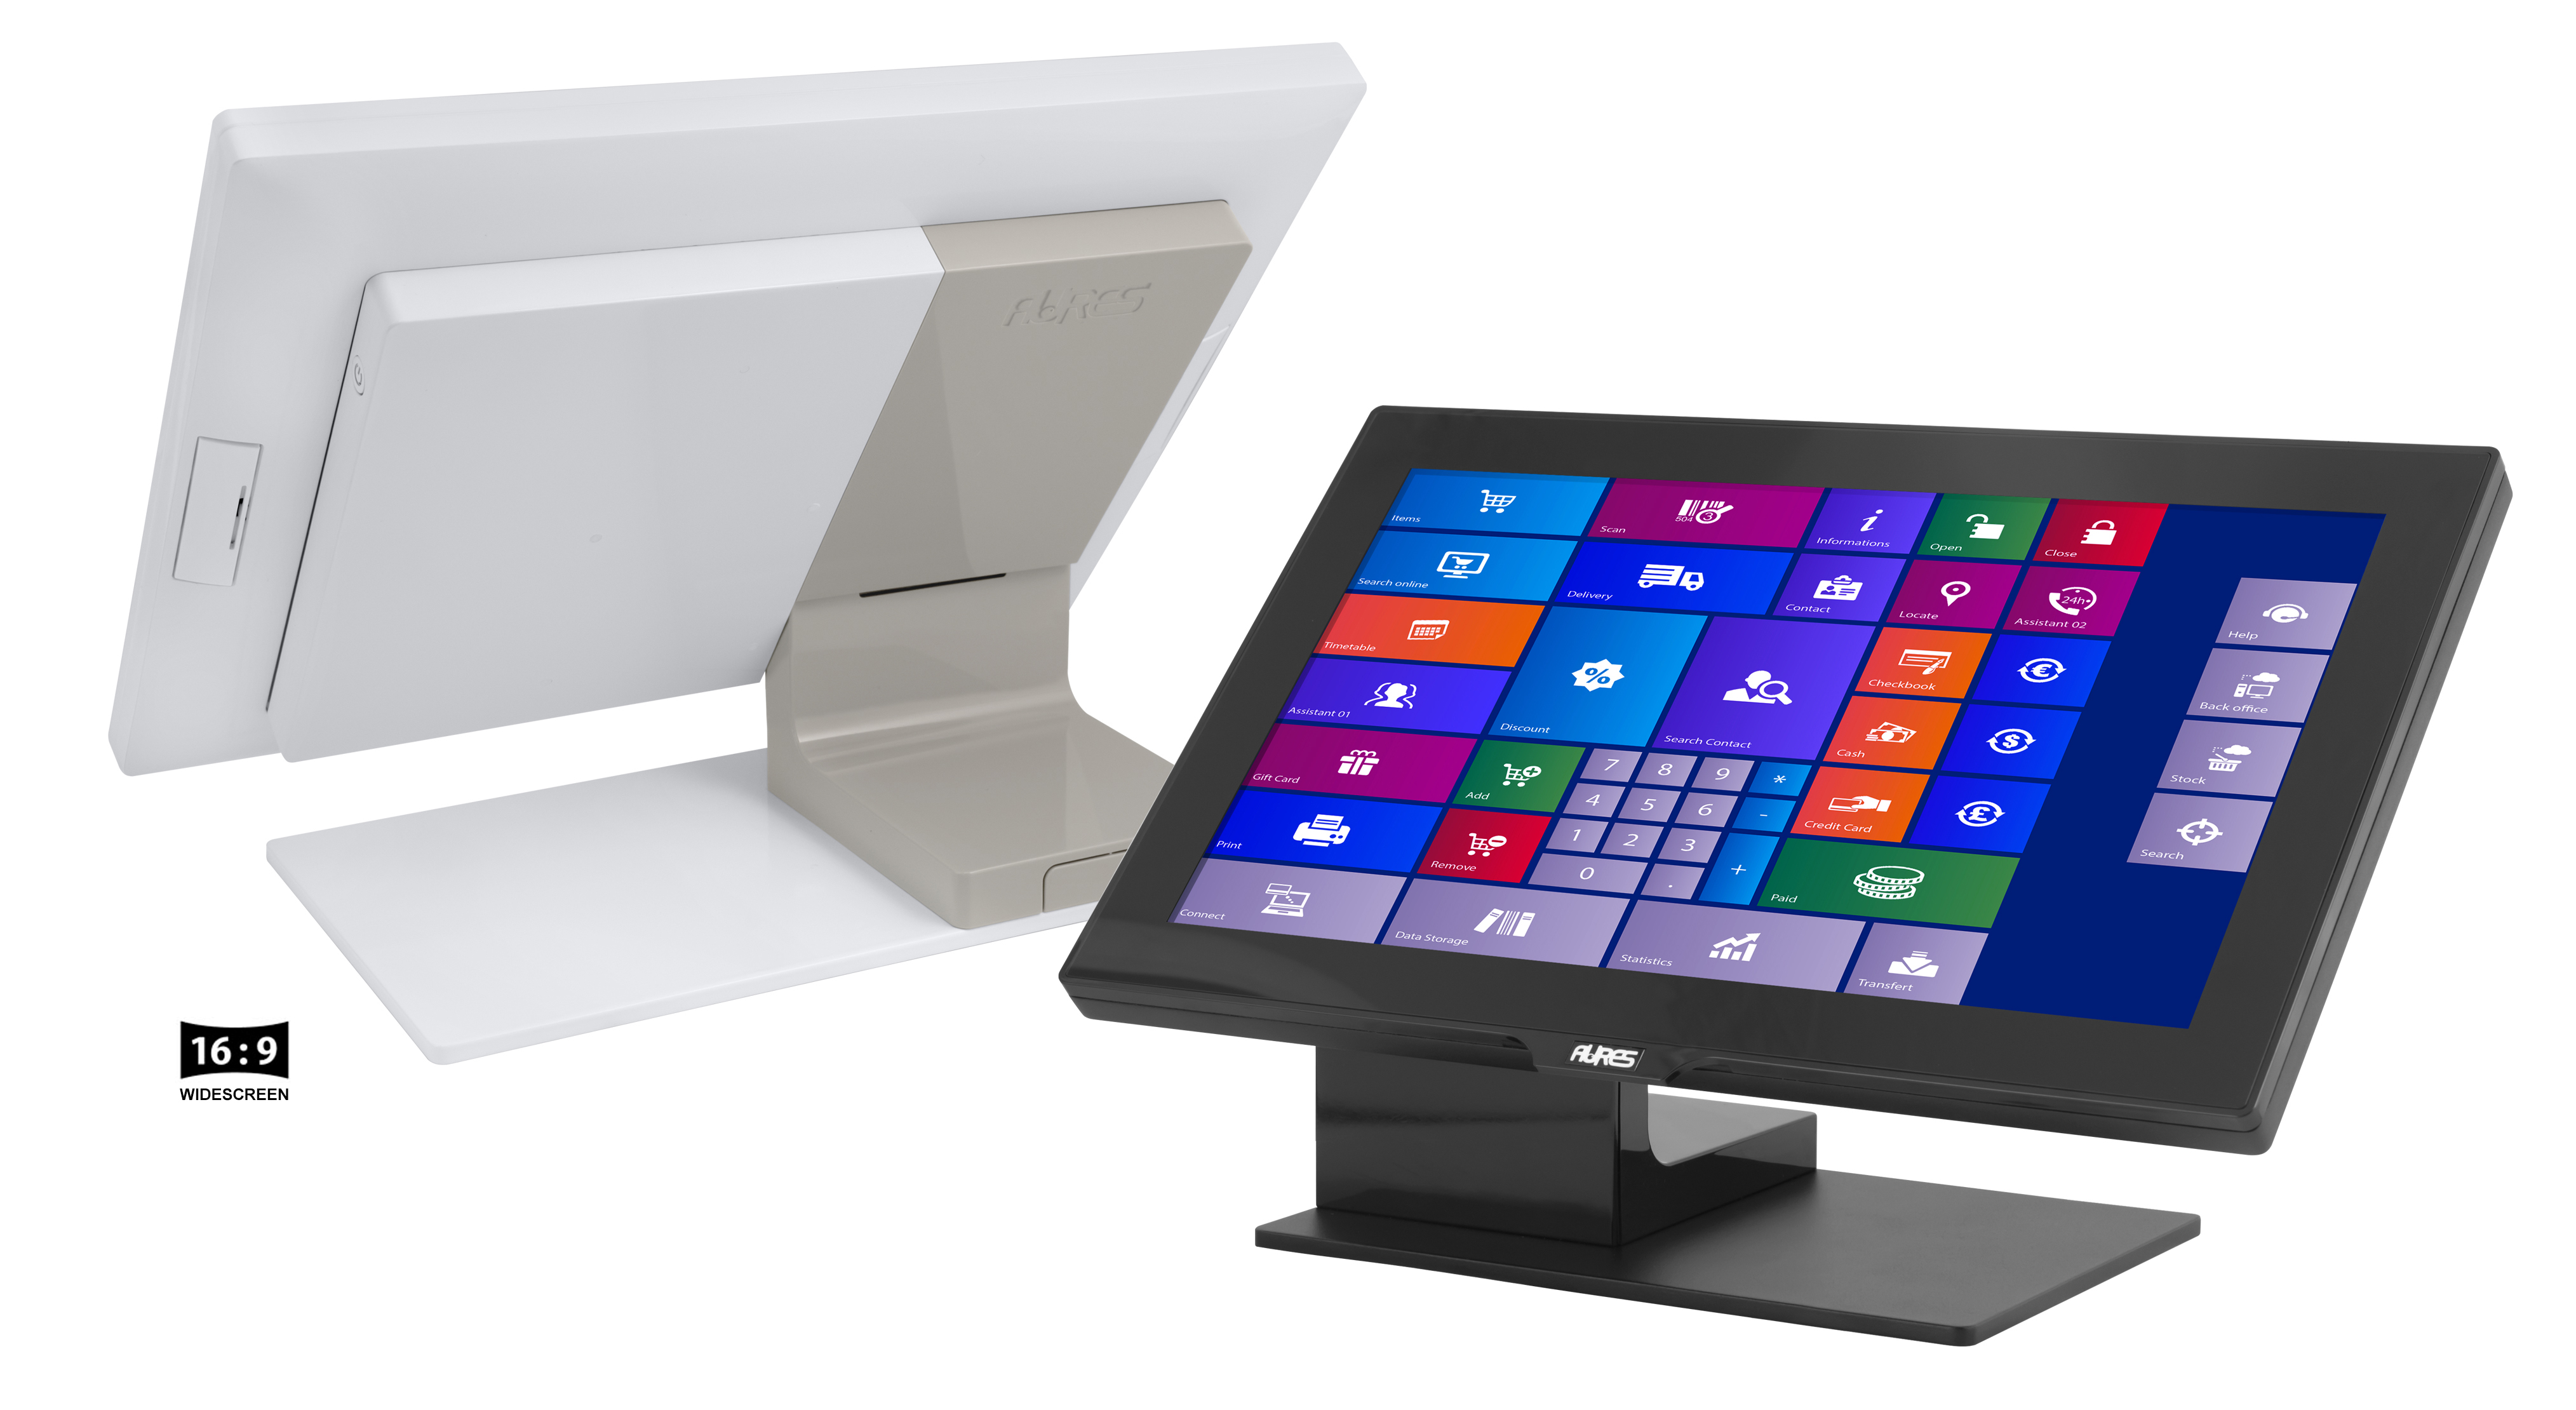 Aures Yuno EPOS terminal - back and front